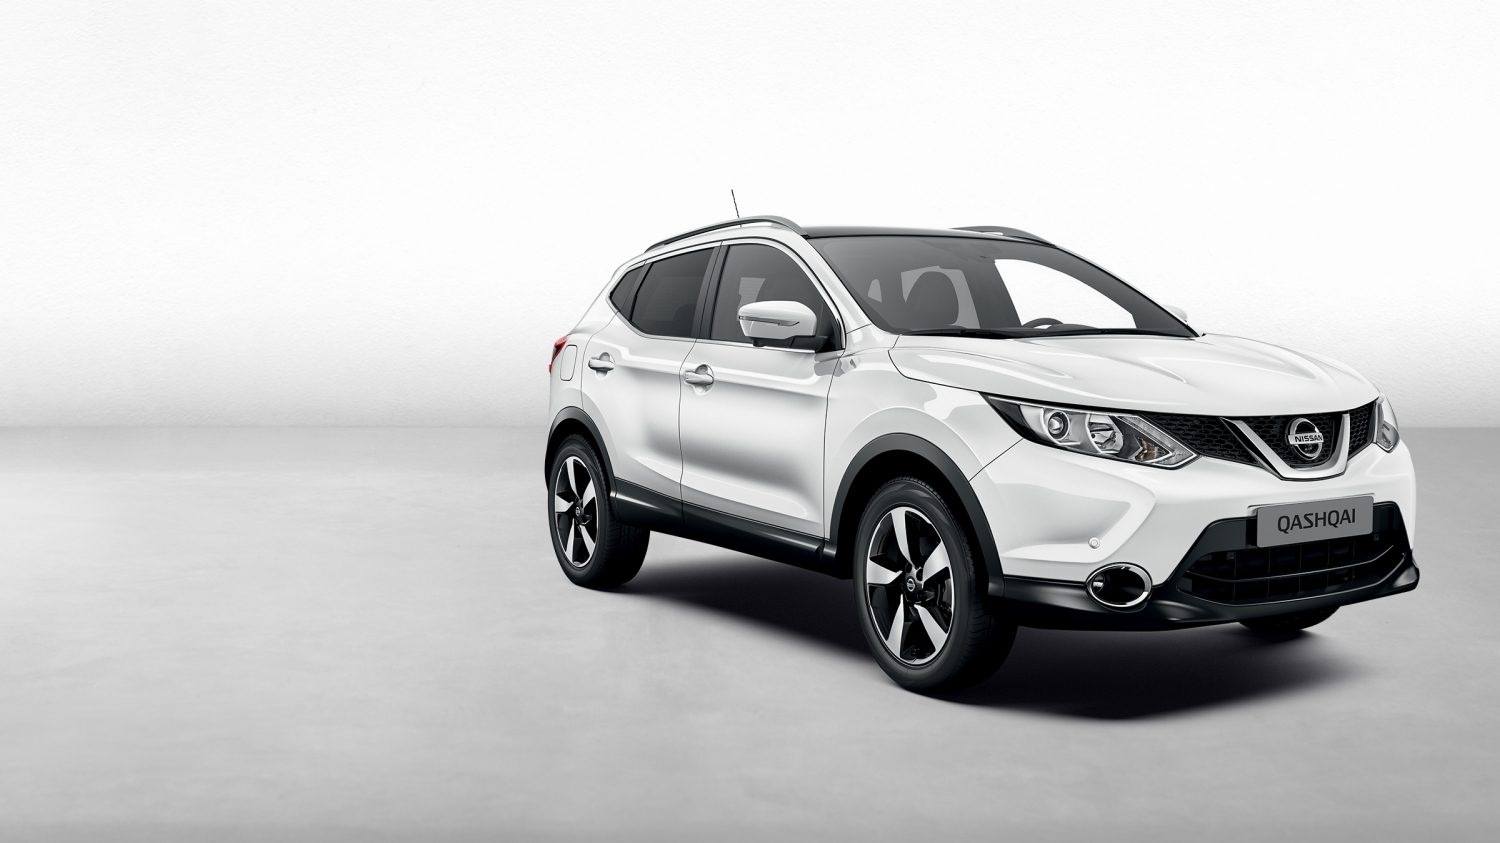 acties qashqai crossover auto met hoge instap nissan. Black Bedroom Furniture Sets. Home Design Ideas